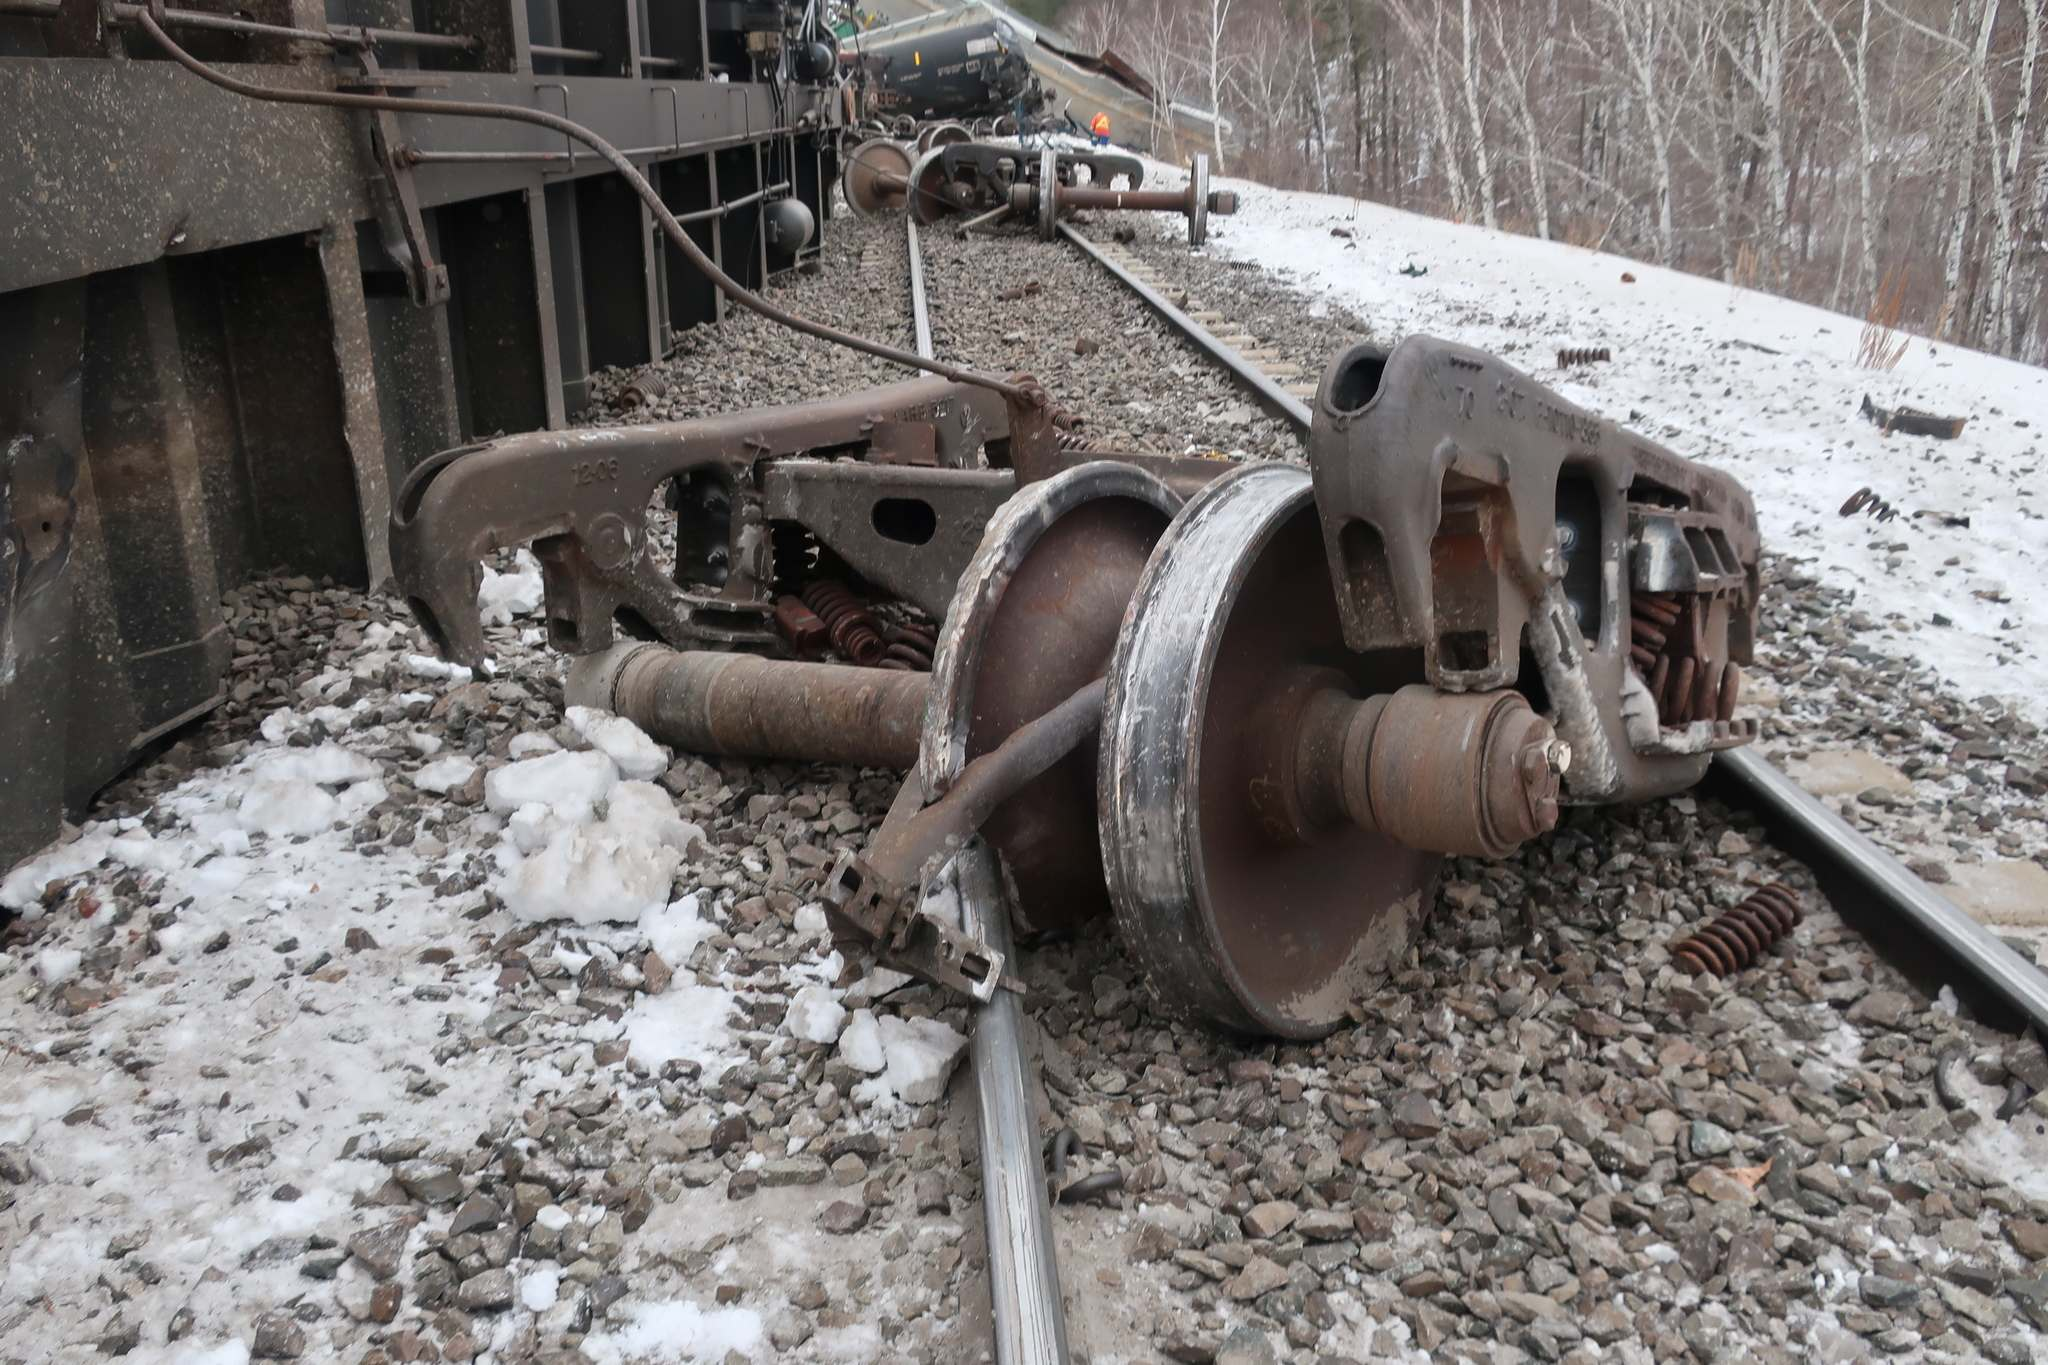 The train derailed at a speed of 80 km/h, as a result of a wheel that had cracked under its surface. (TSB photo)